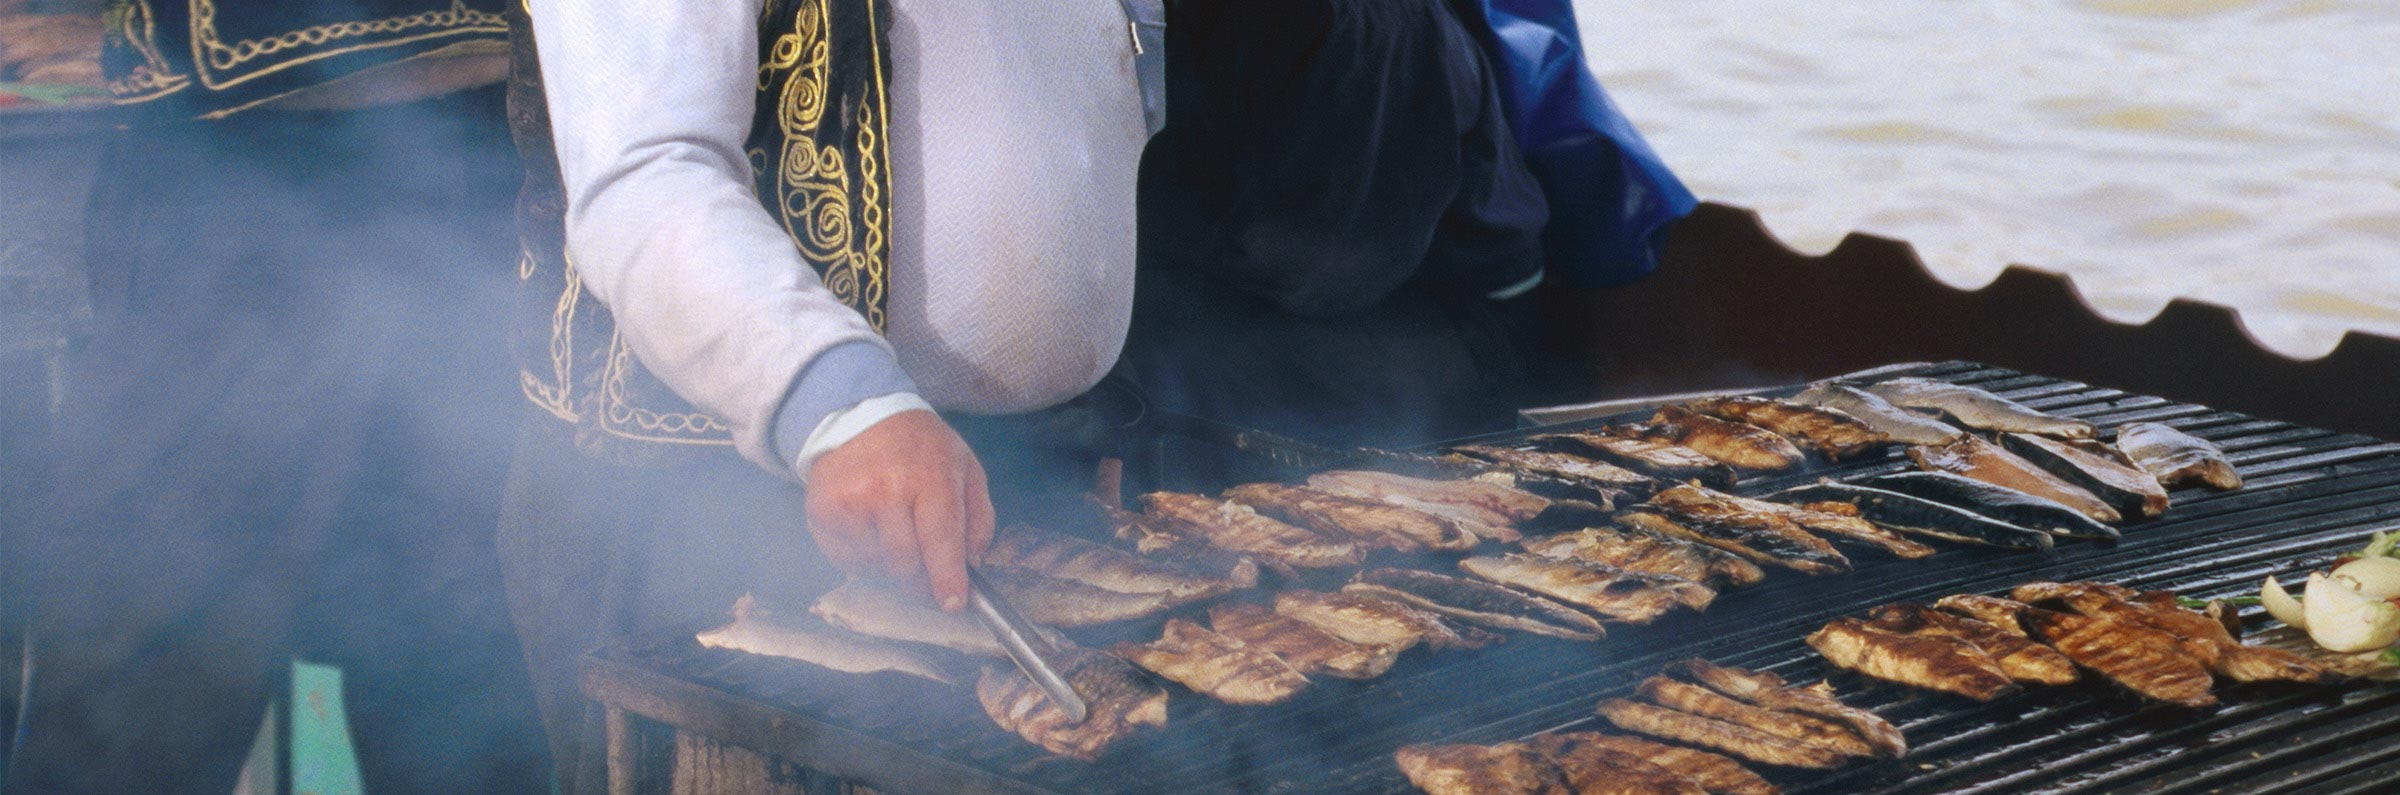 Food and drink in Istanbul